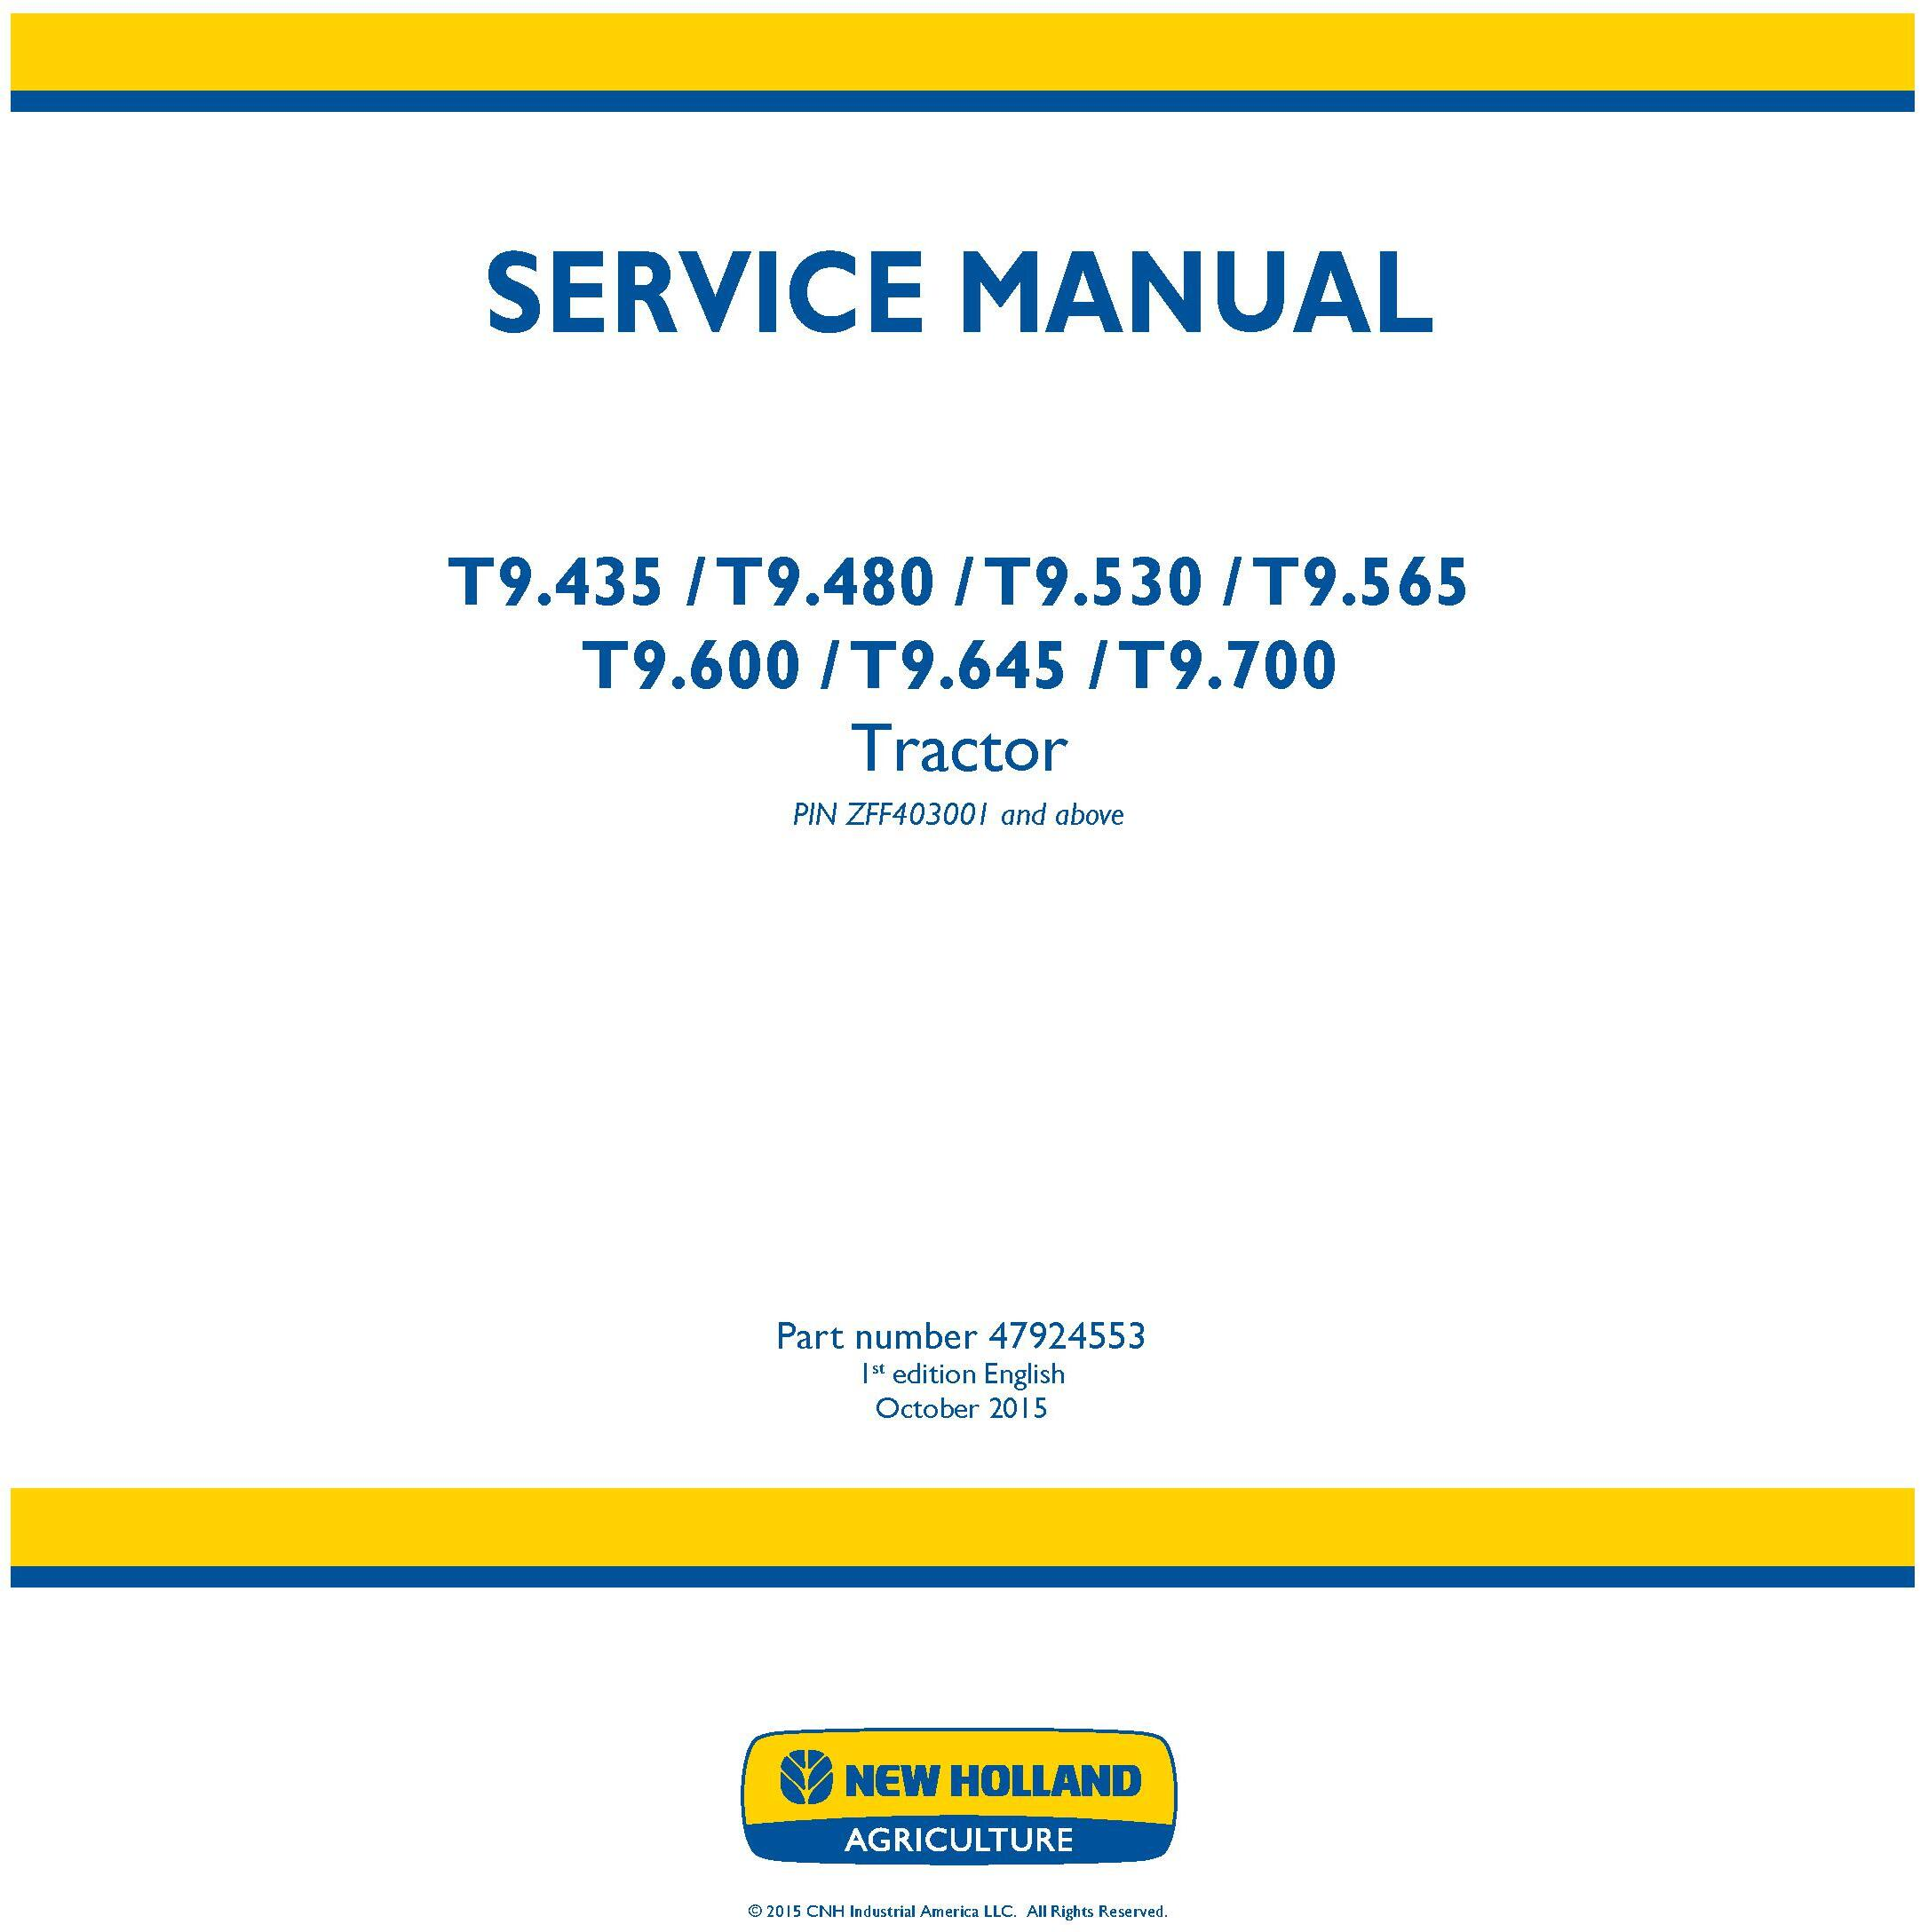 New Holland T9.435, T9.480, T9.530, T9.565, T9.600, T9.645, T9.700 Tractor Service Manual (Europe) - 19461